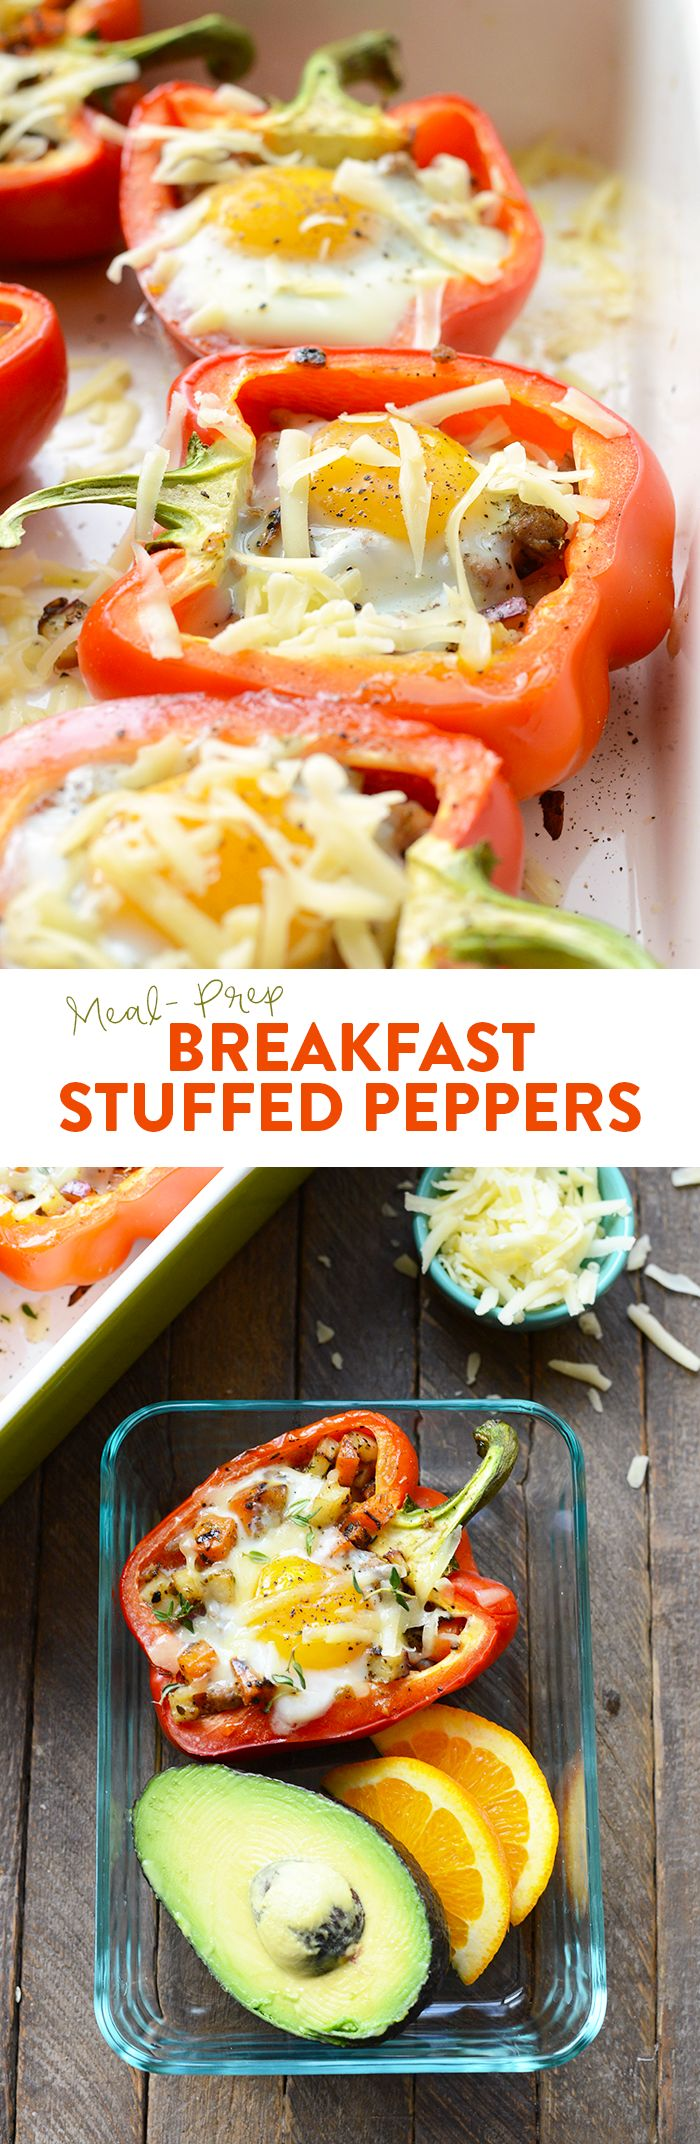 Meal Prep: Breakfast Stuffed Peppers - Fit Foodie Finds